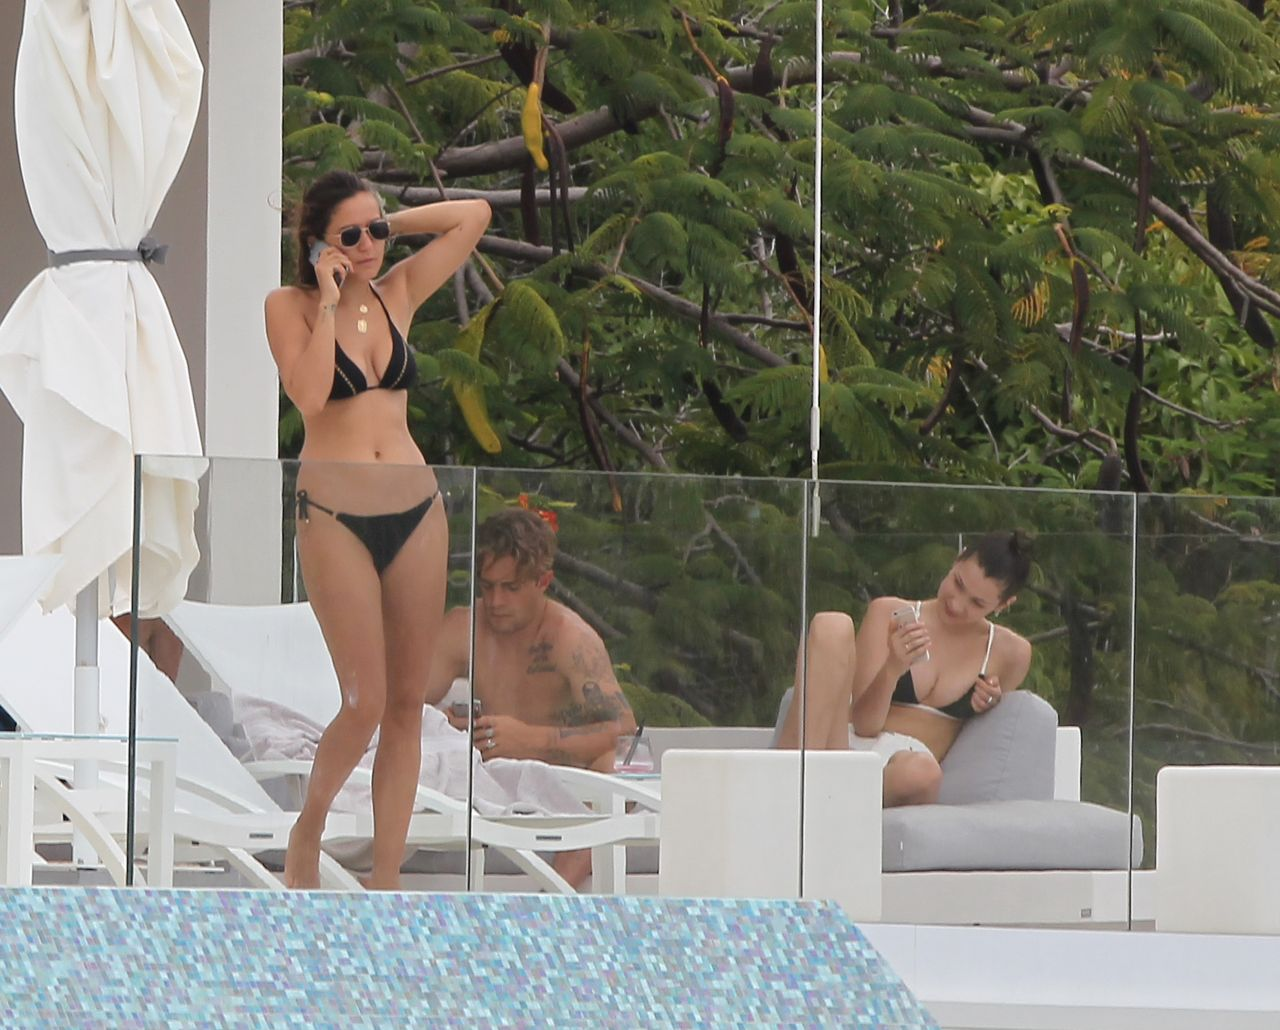 Bella Hadid In Bikini At A Pool In St Barts 4 1 2016